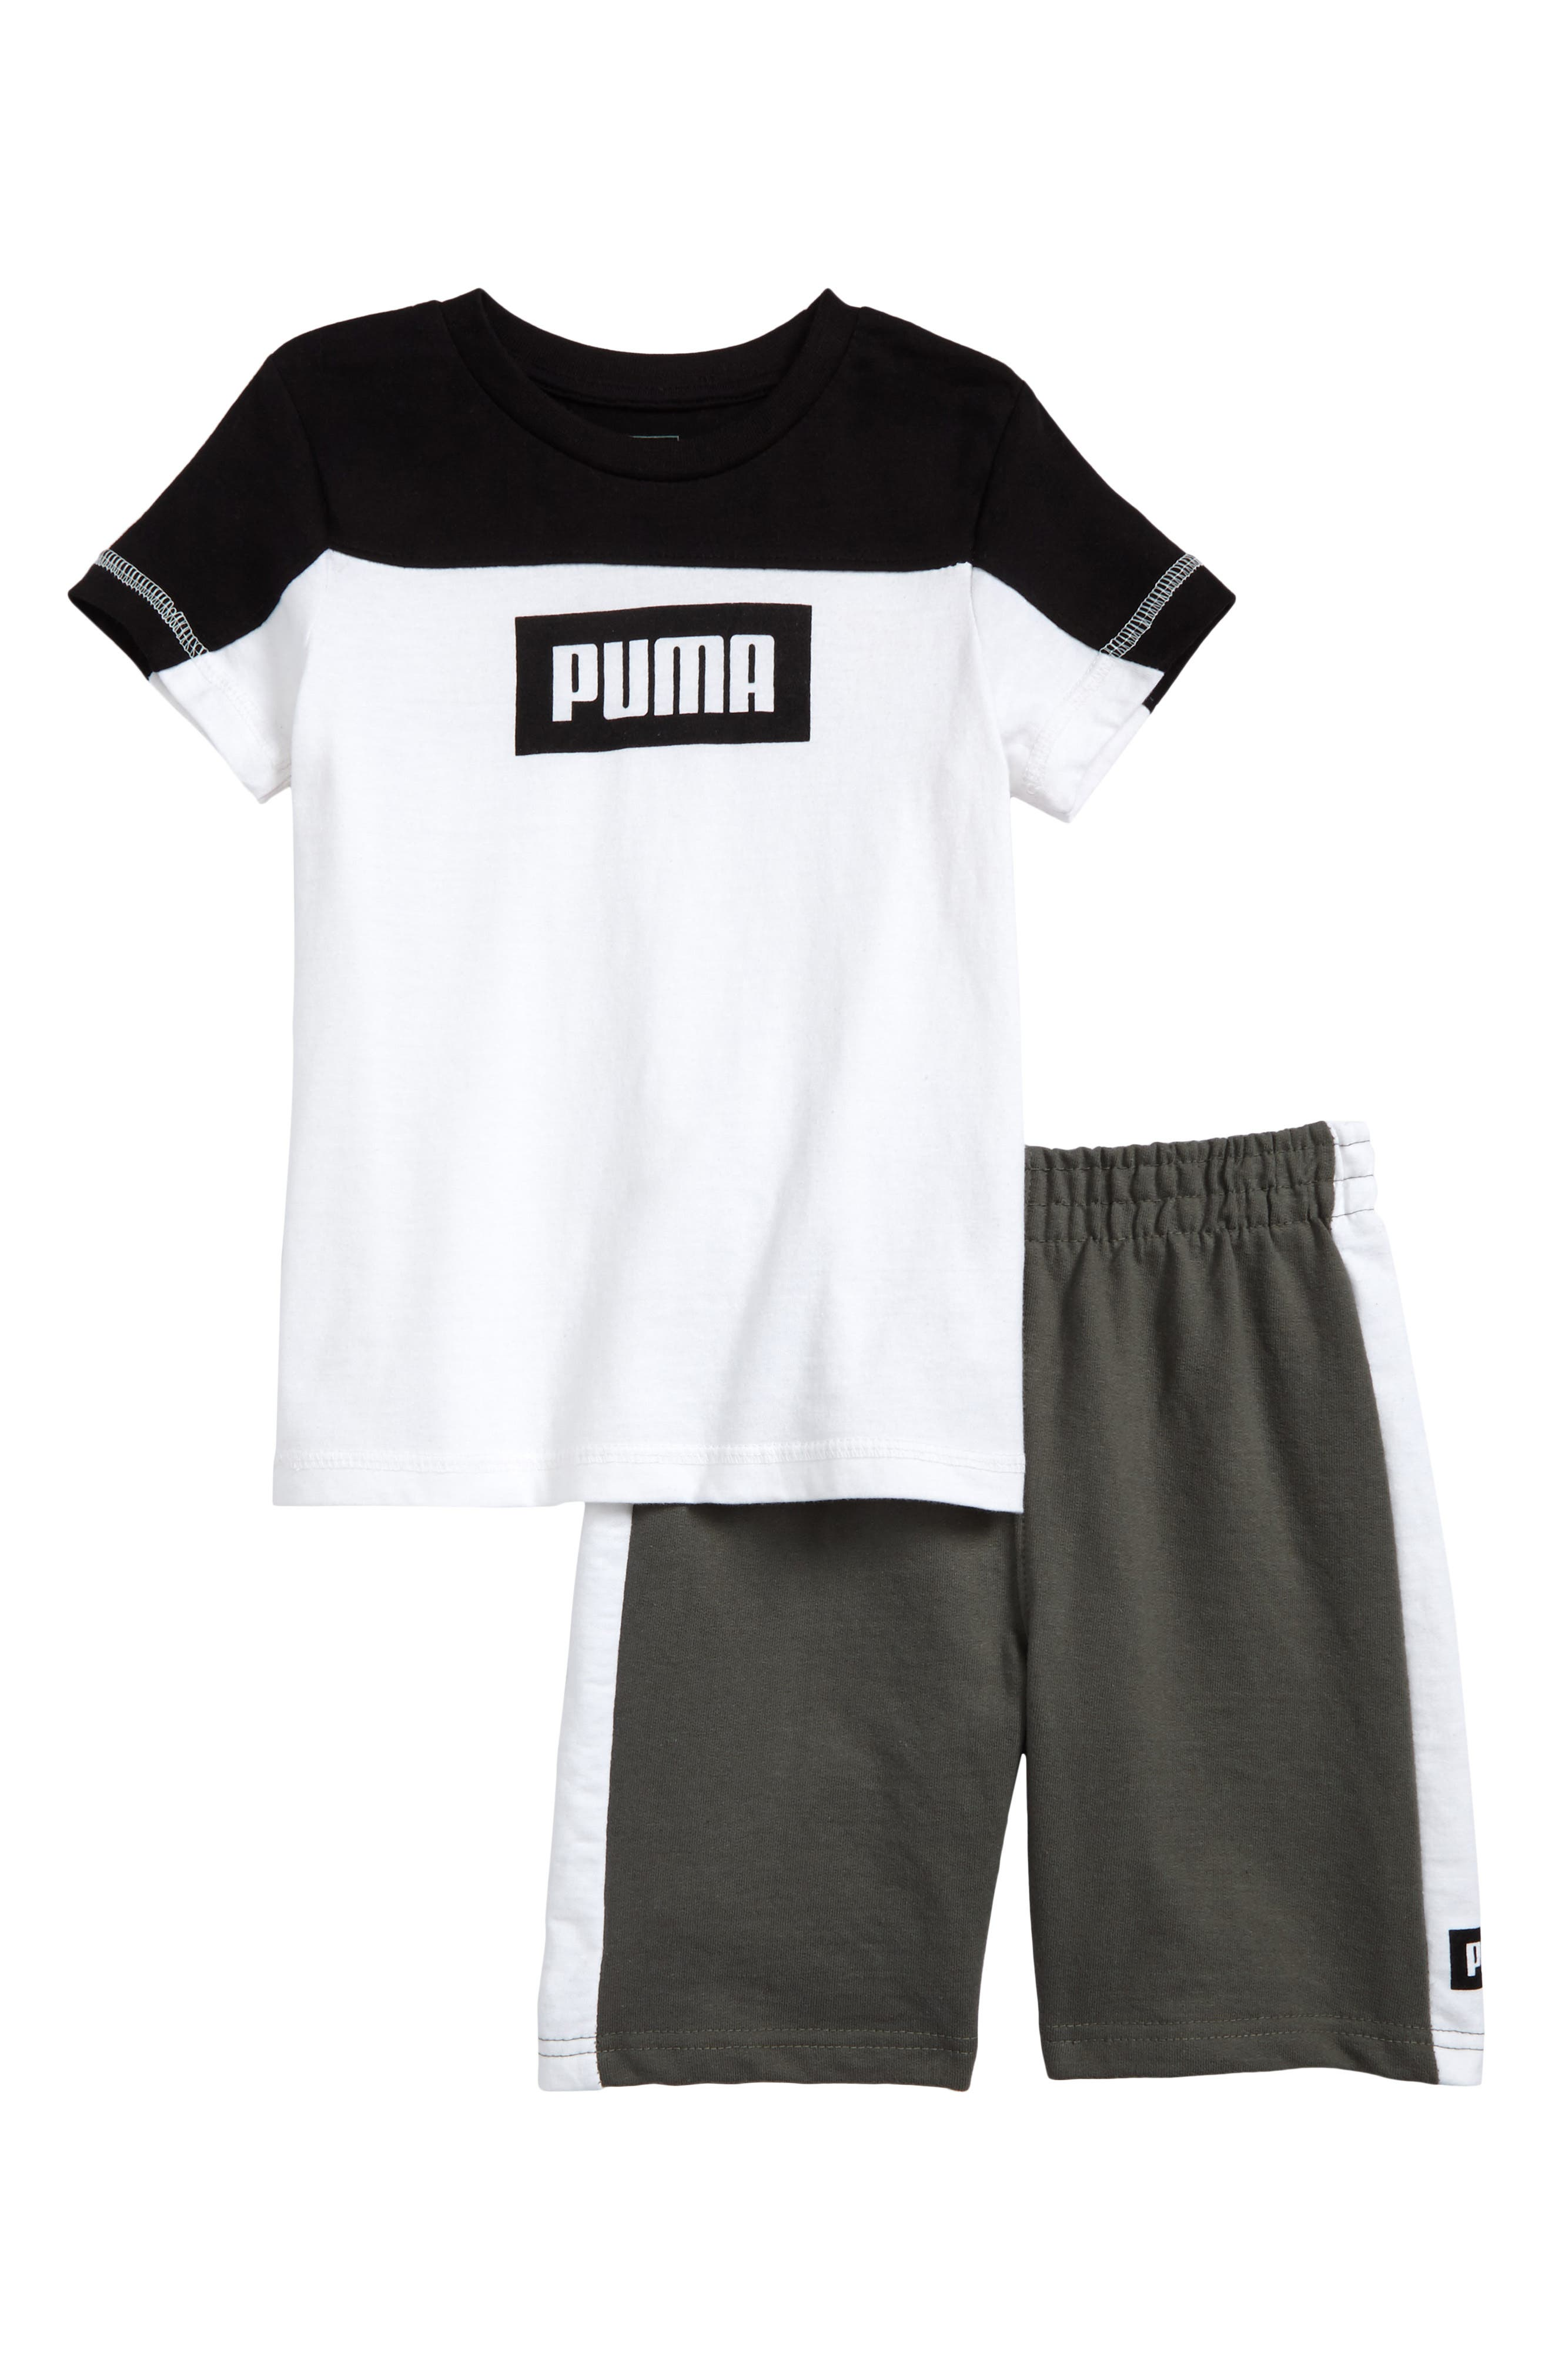 PUMA Rebel Logo T-Shirt & Shorts Set (Toddler Boys & Little Boys)